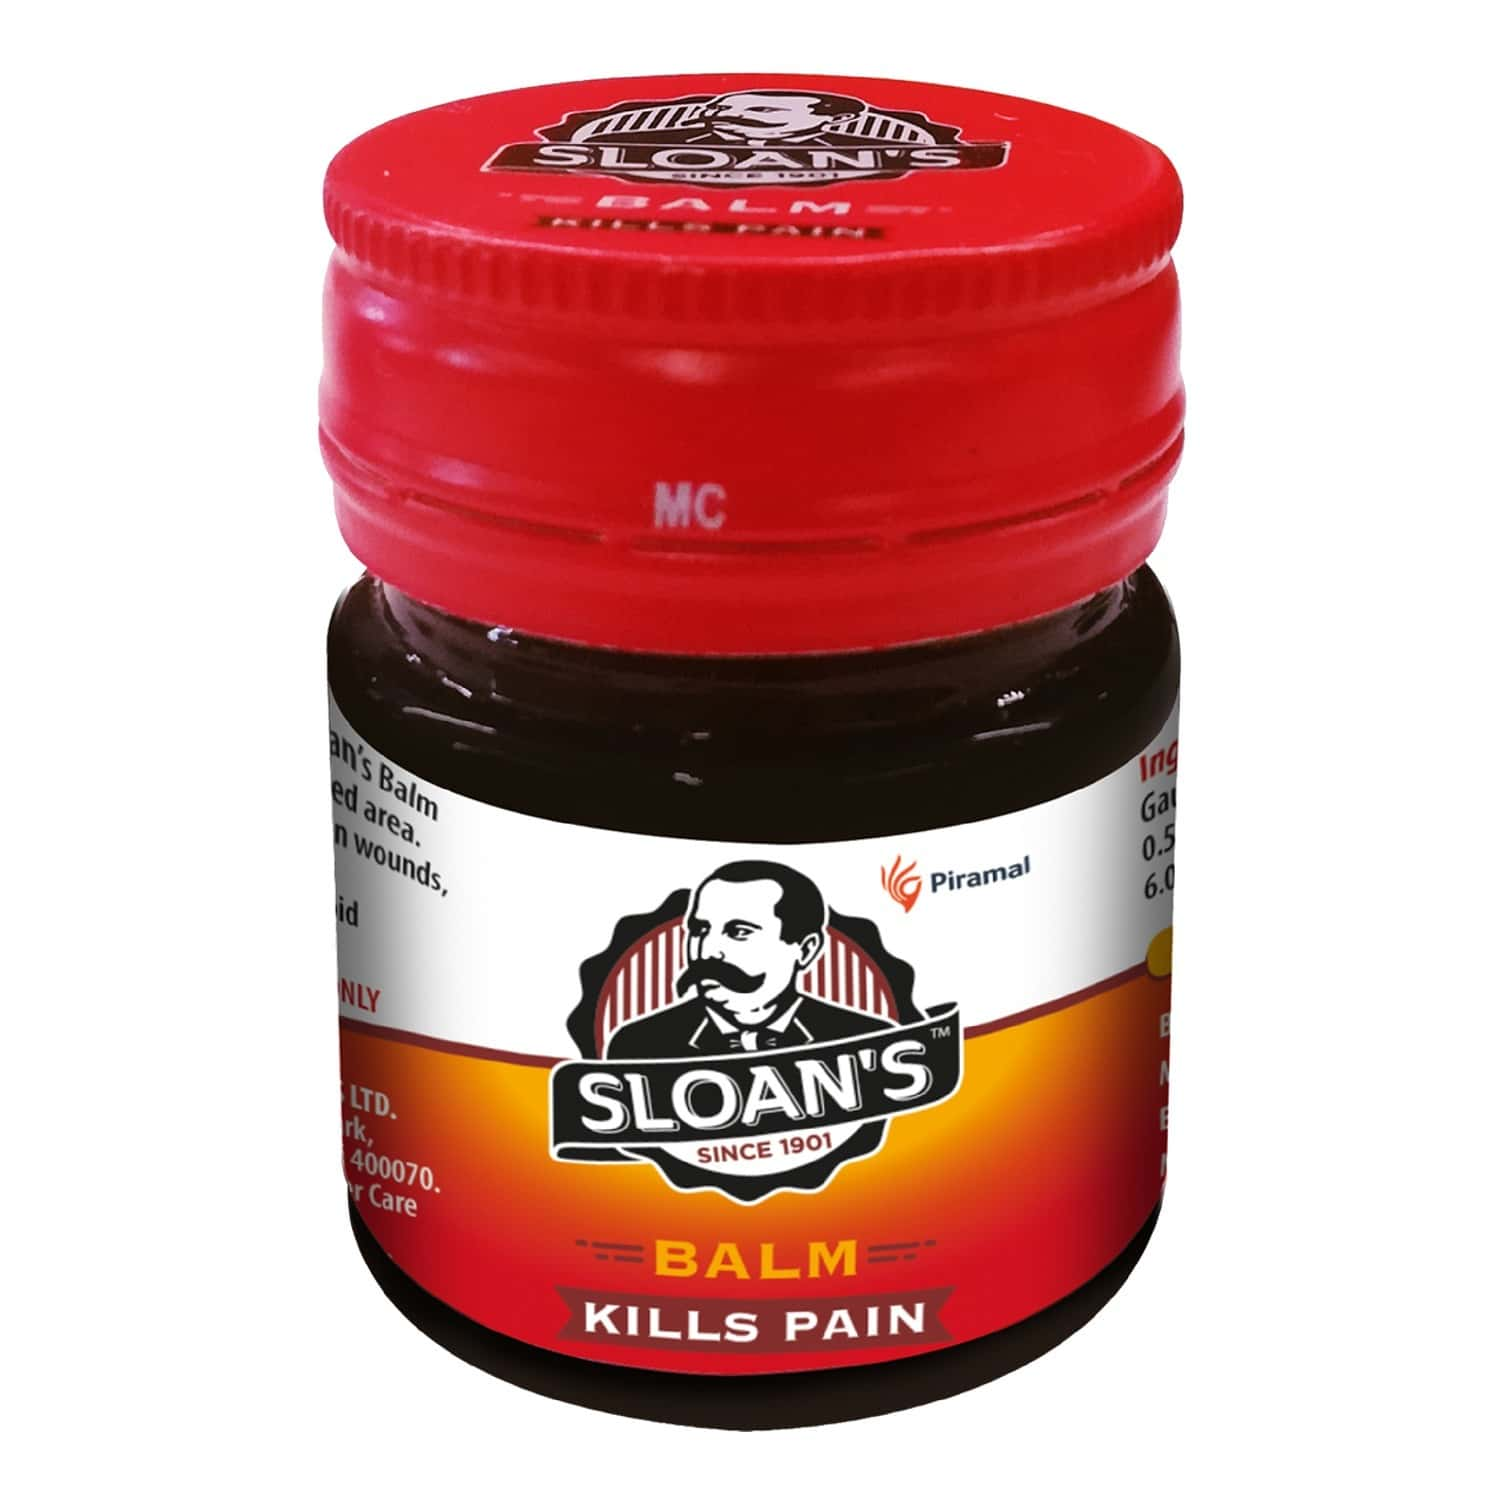 Sloan's Pain Relief Balm - 20g